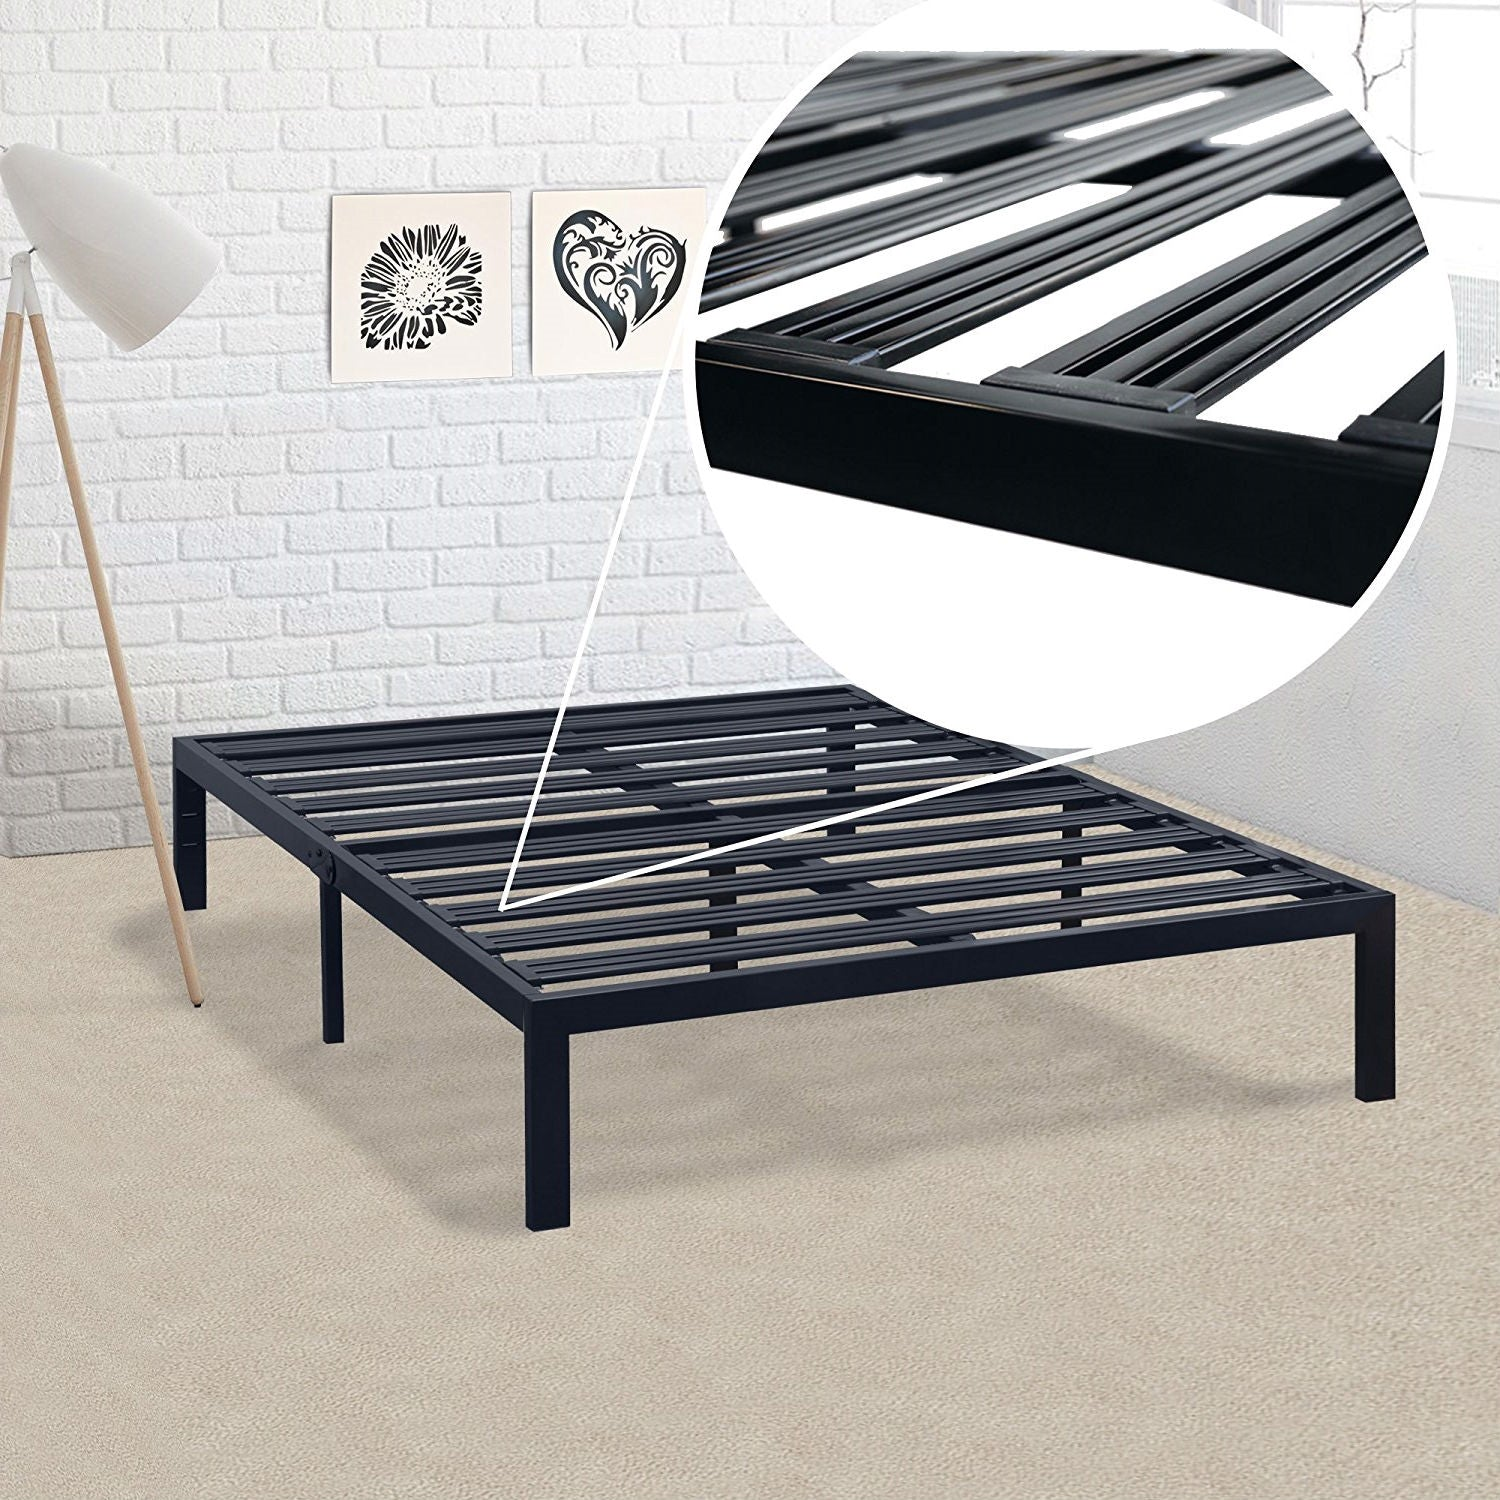 Queen size Metal Platform Bed Frame with Heavy Duty Steel Slats